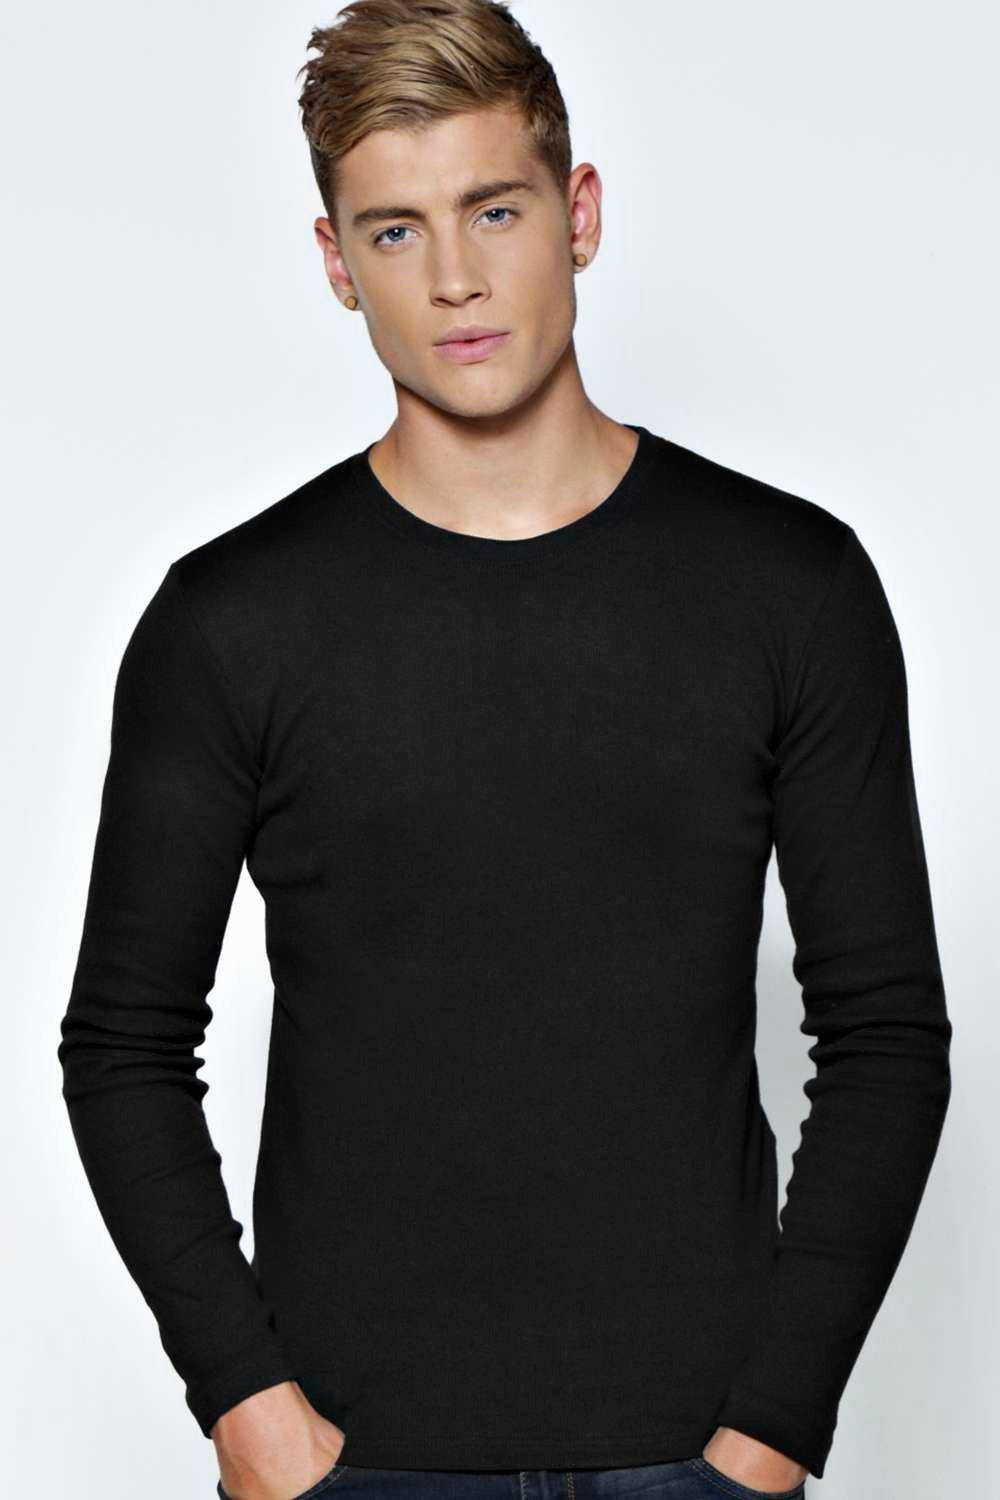 Boohoo Mens Long Sleeve Crew Neck Ribbed T Shirt Ebay